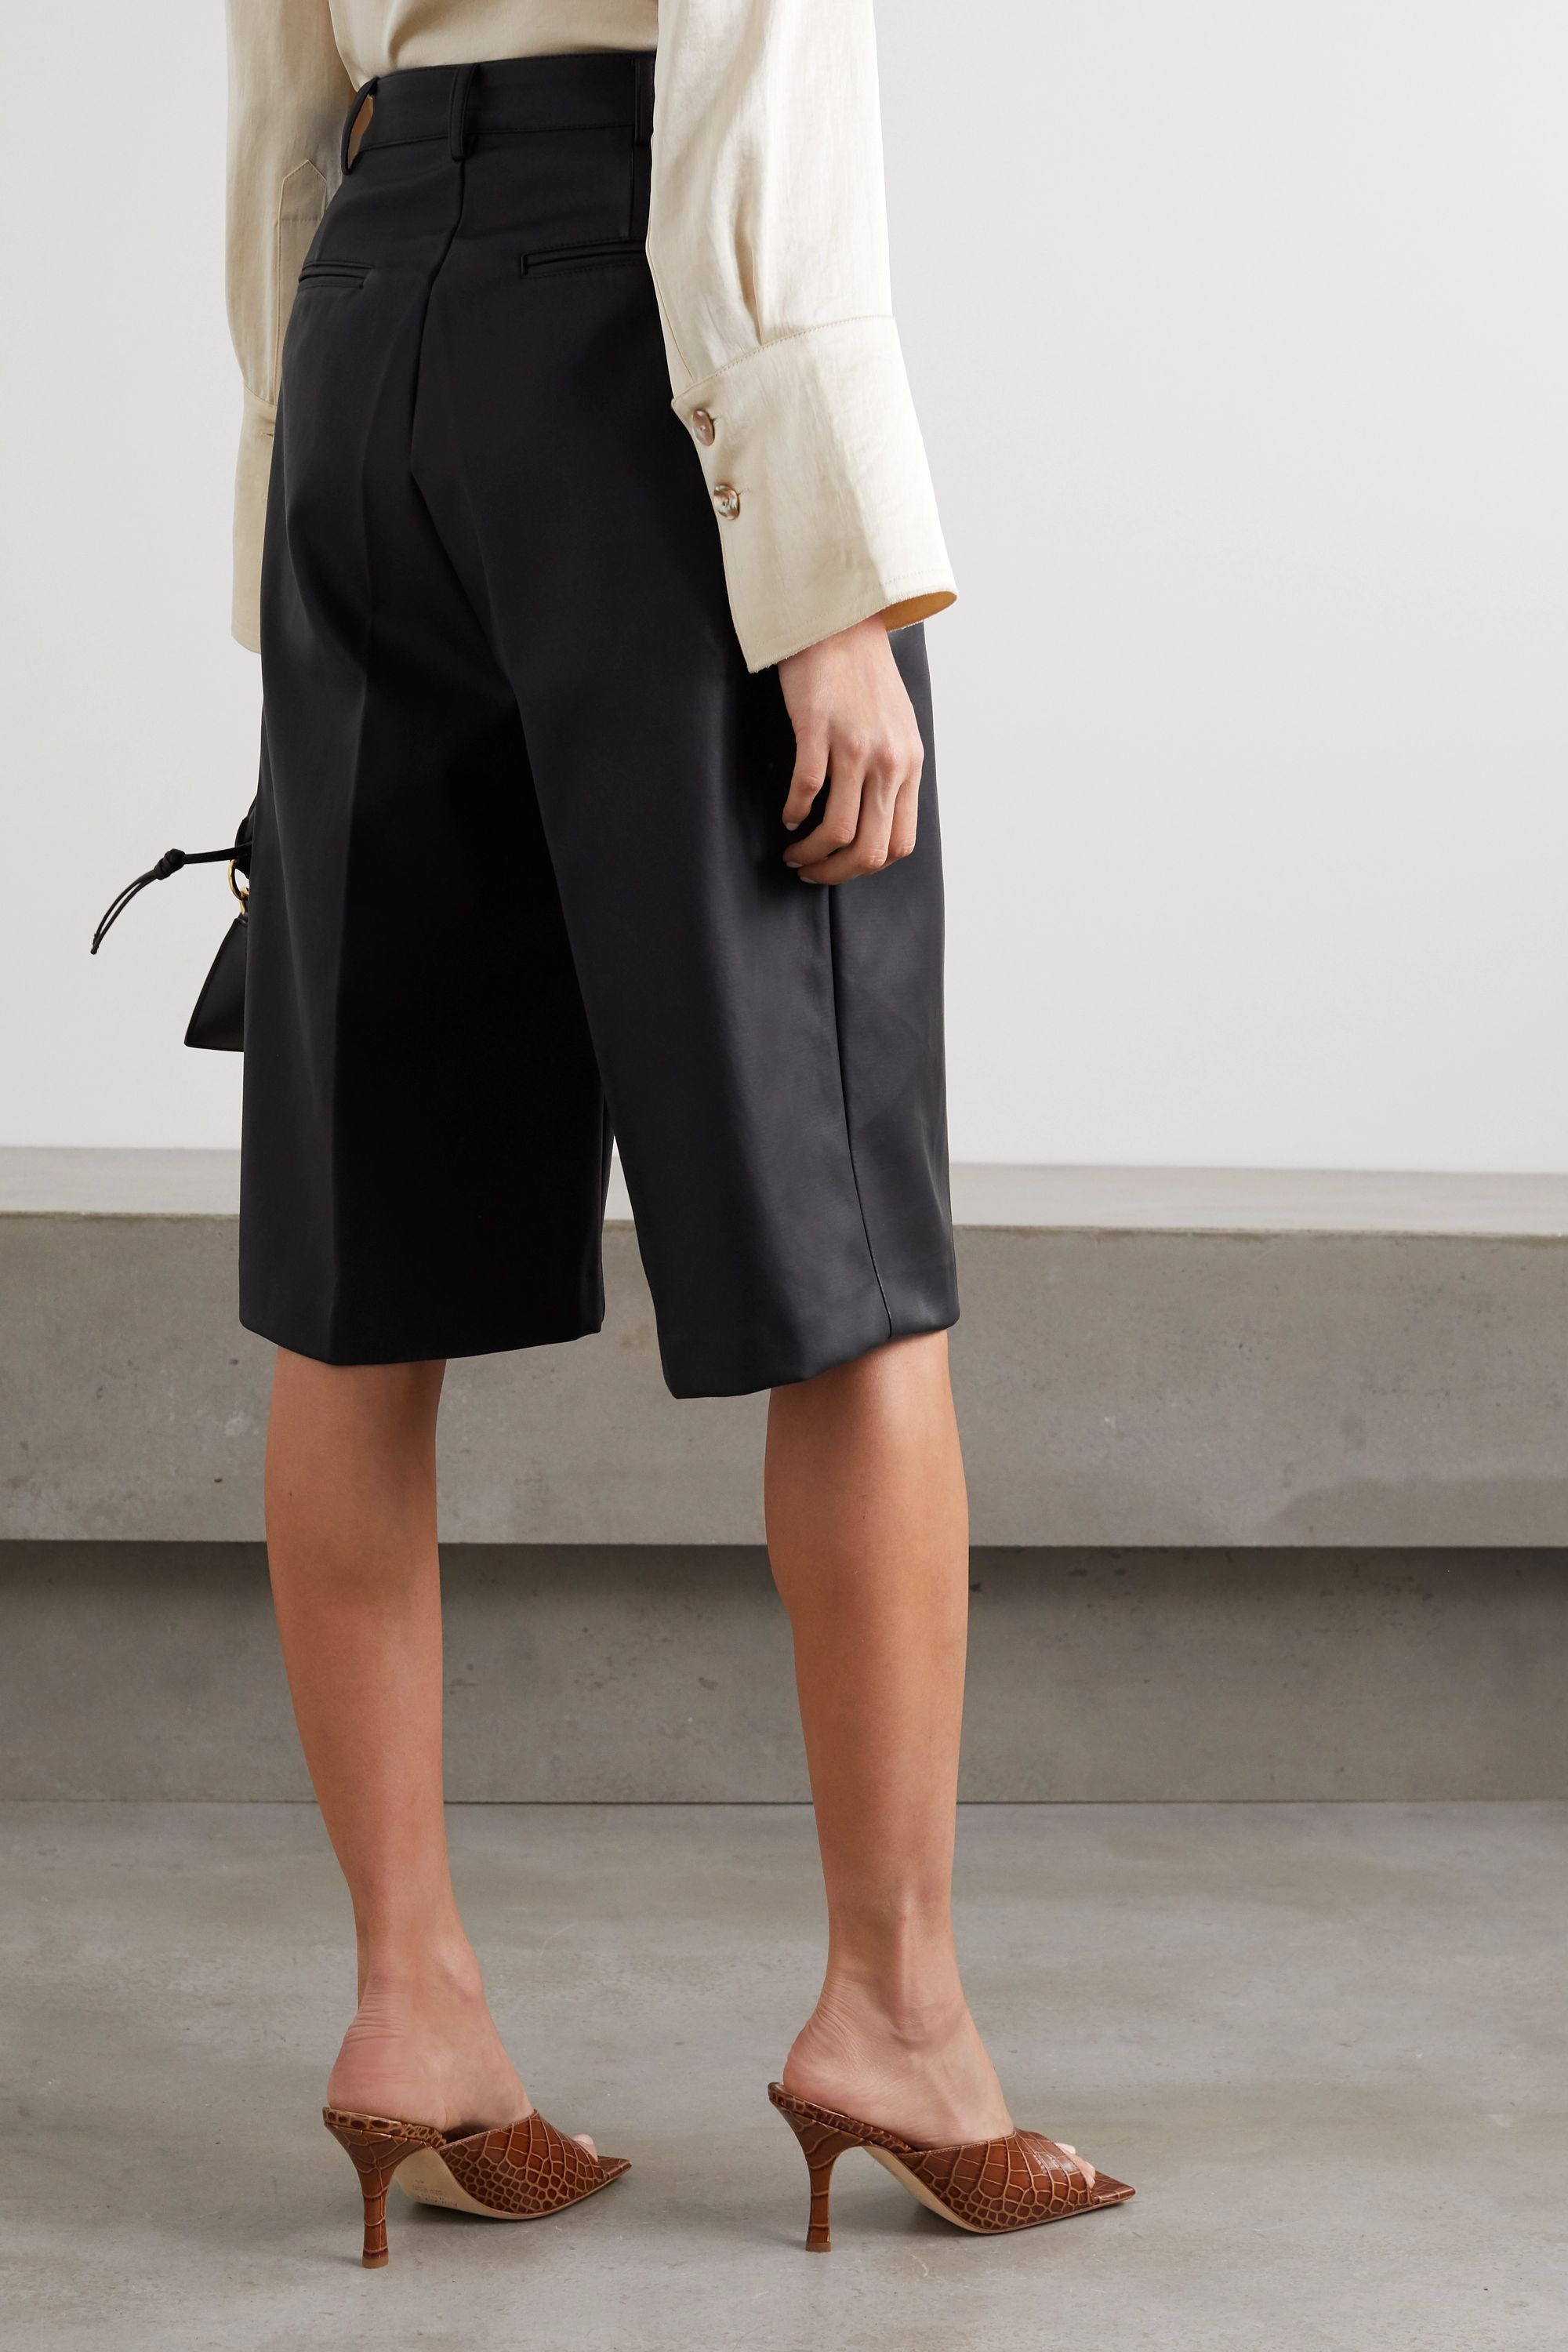 Frankie Shop Pernille pleated faux leather shorts